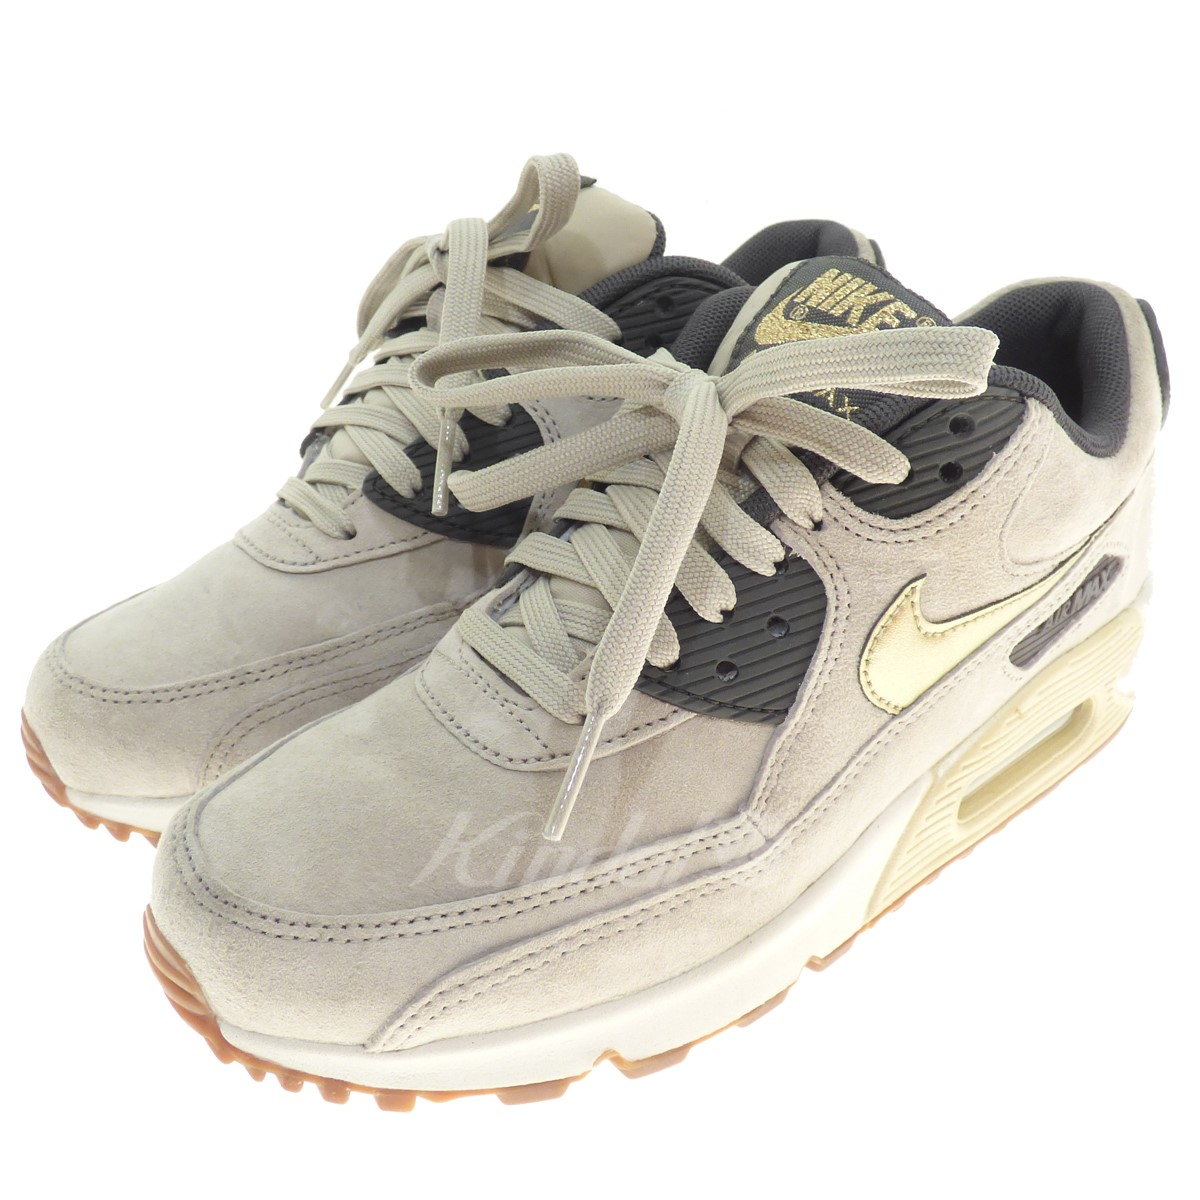 lowest price 03002 6bd28 NIKE WMNS AIR MAX 90 PRM SUEDE sneakers beige size 23. 0 (Nike)